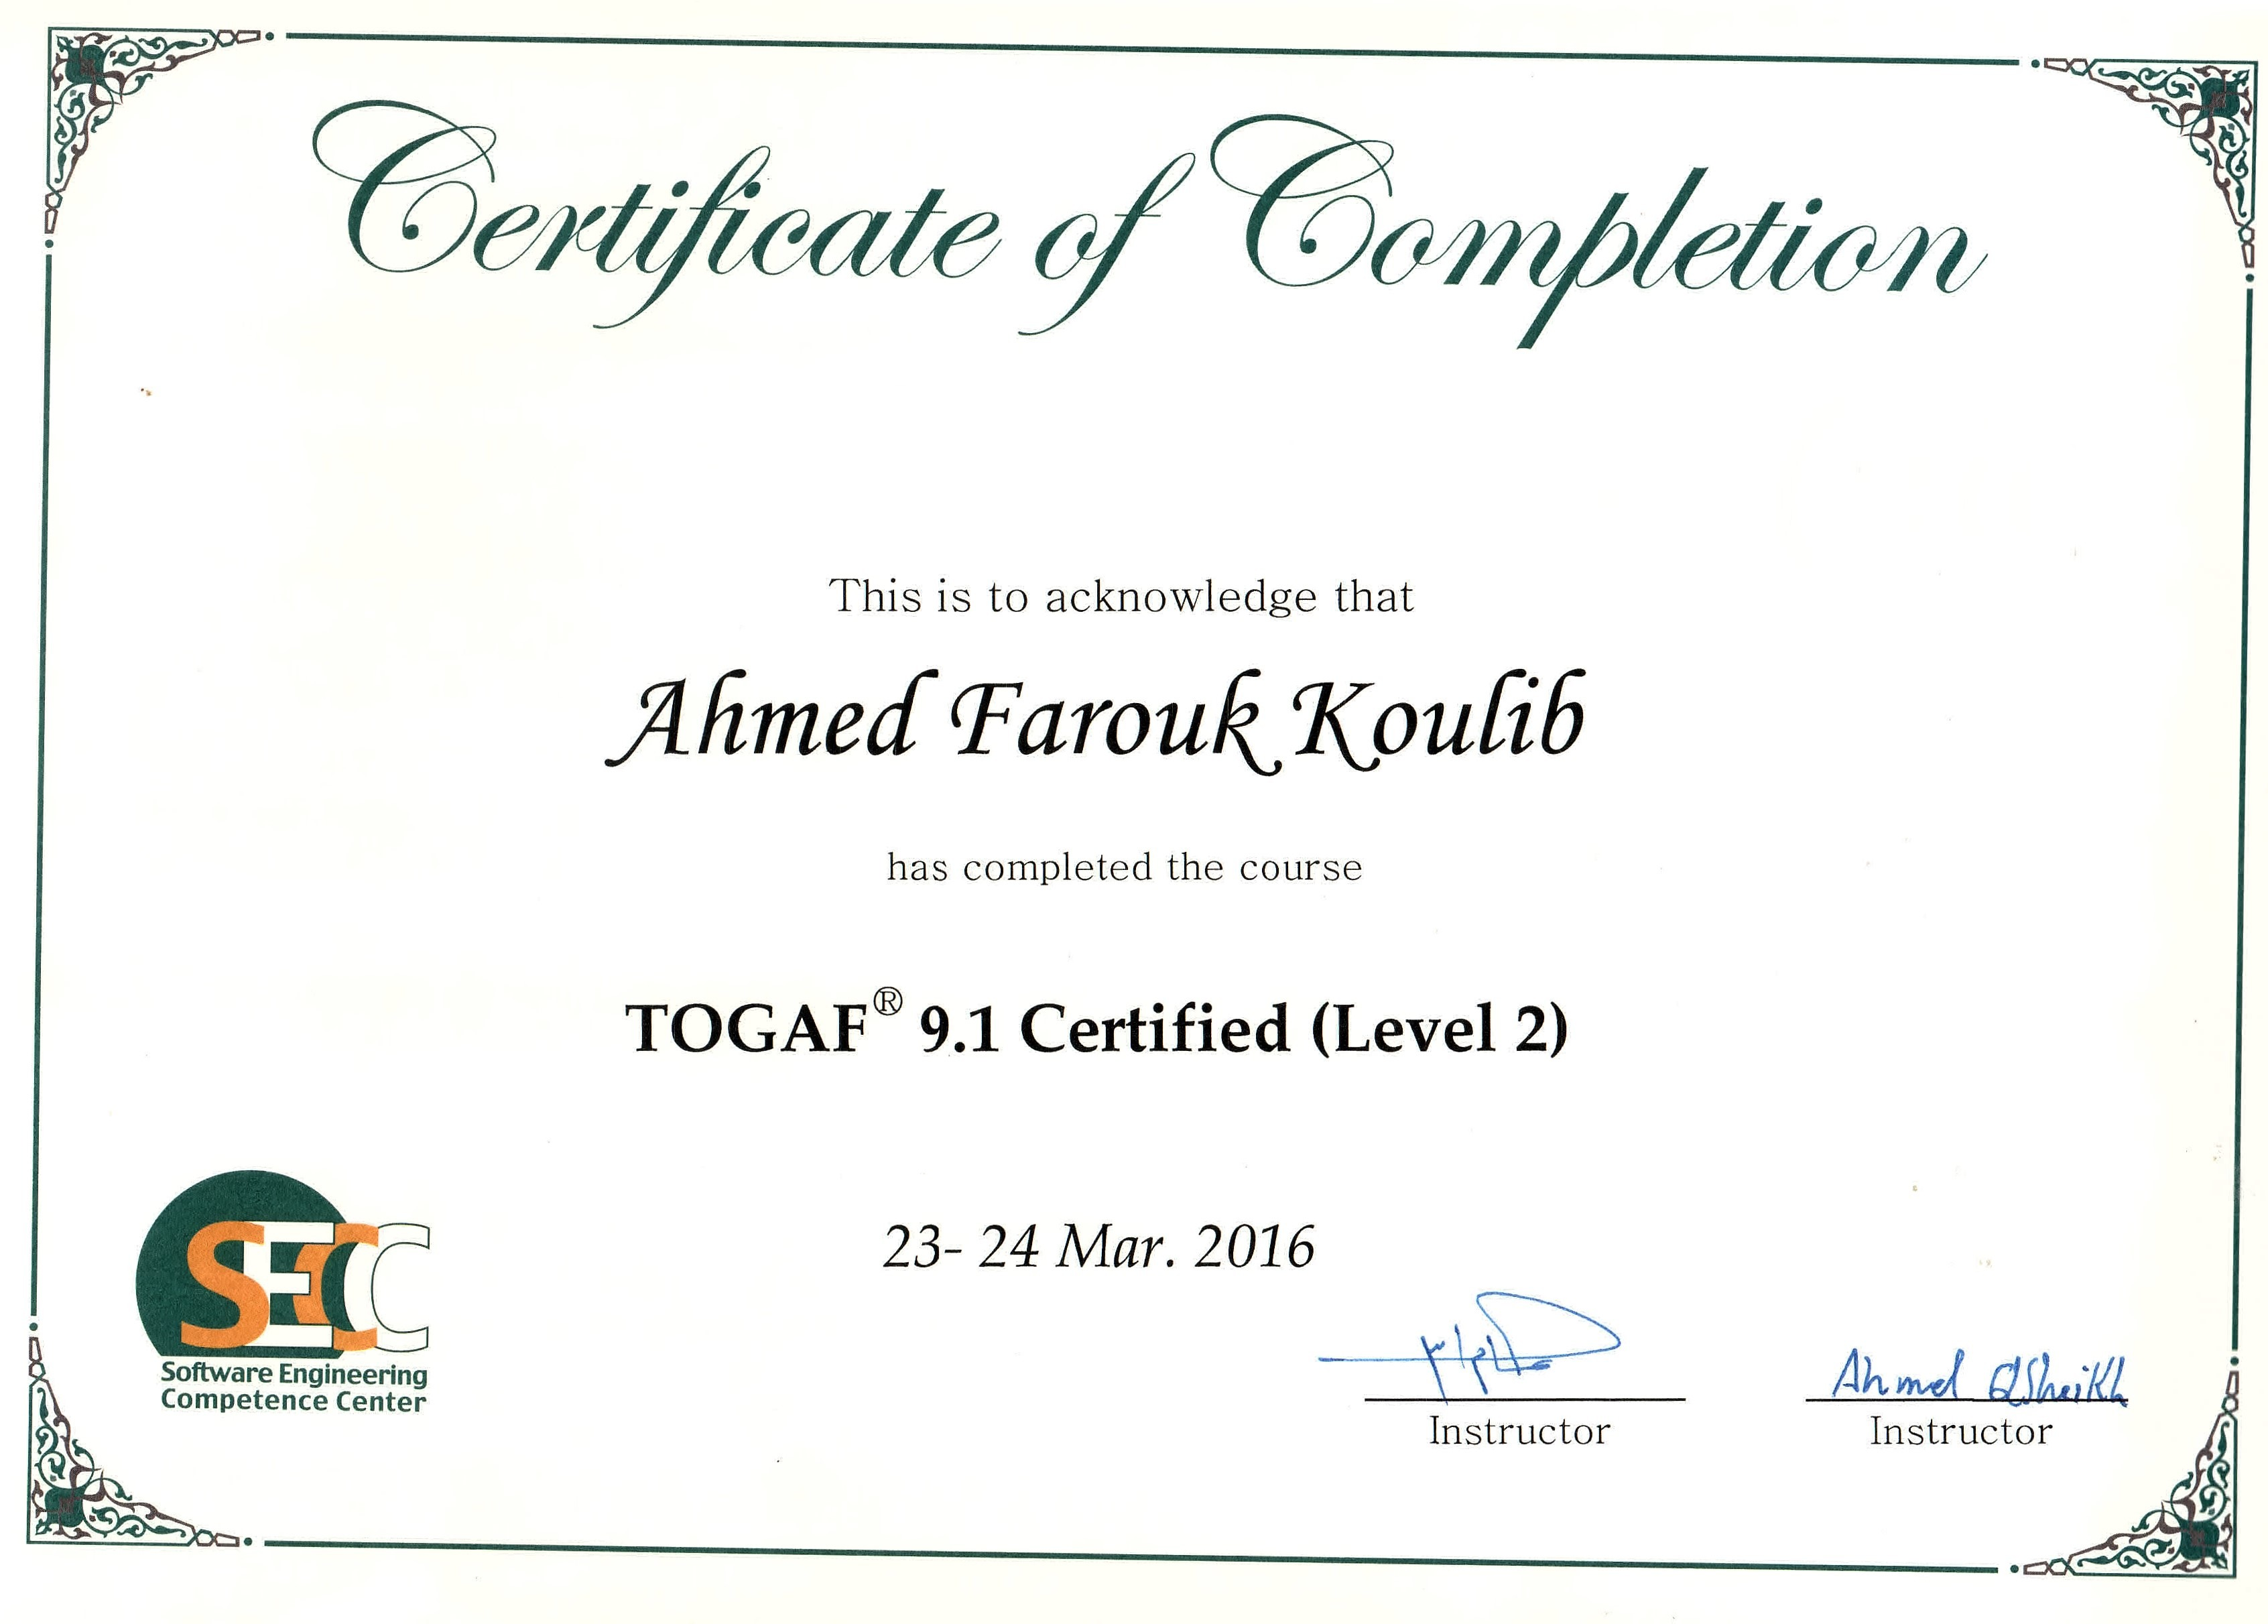 Ahmed farouk koulib bayt training institute software engineering competence center secc xflitez Gallery